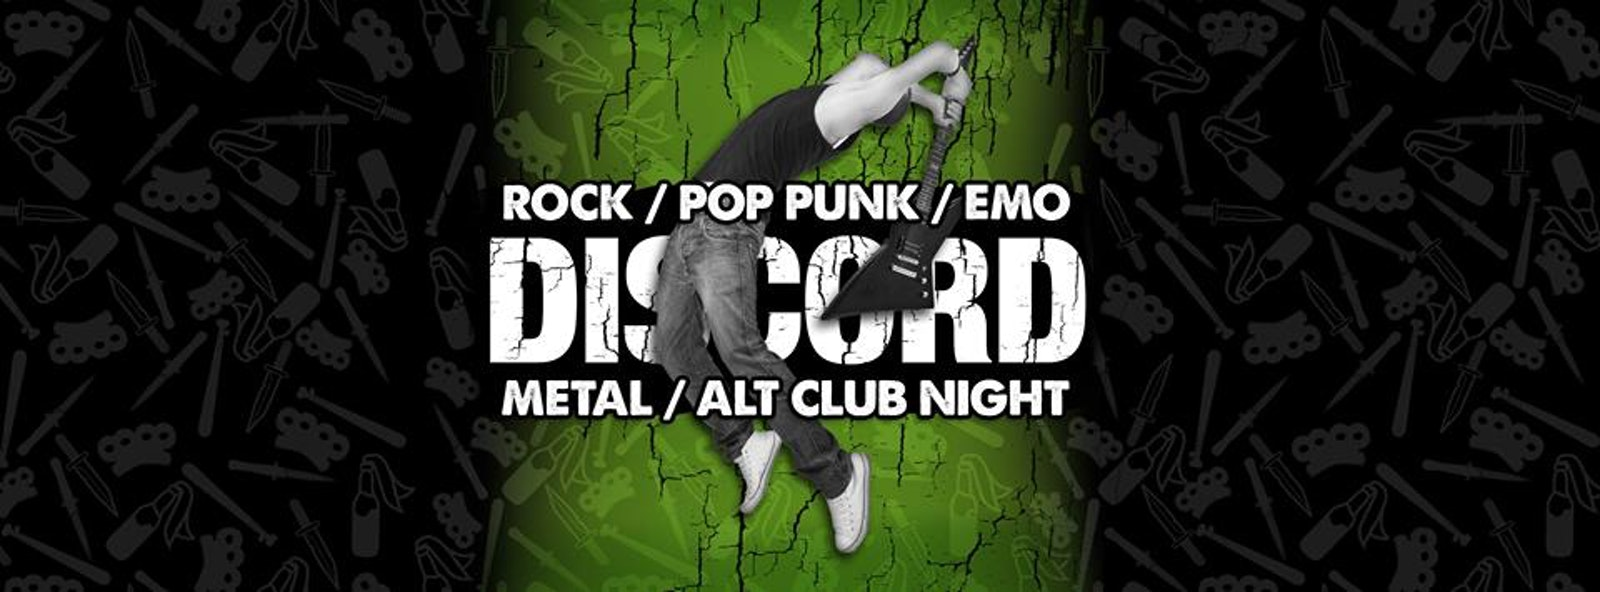 DISCORD – Rock, Pop Punk, Emo & Metal!